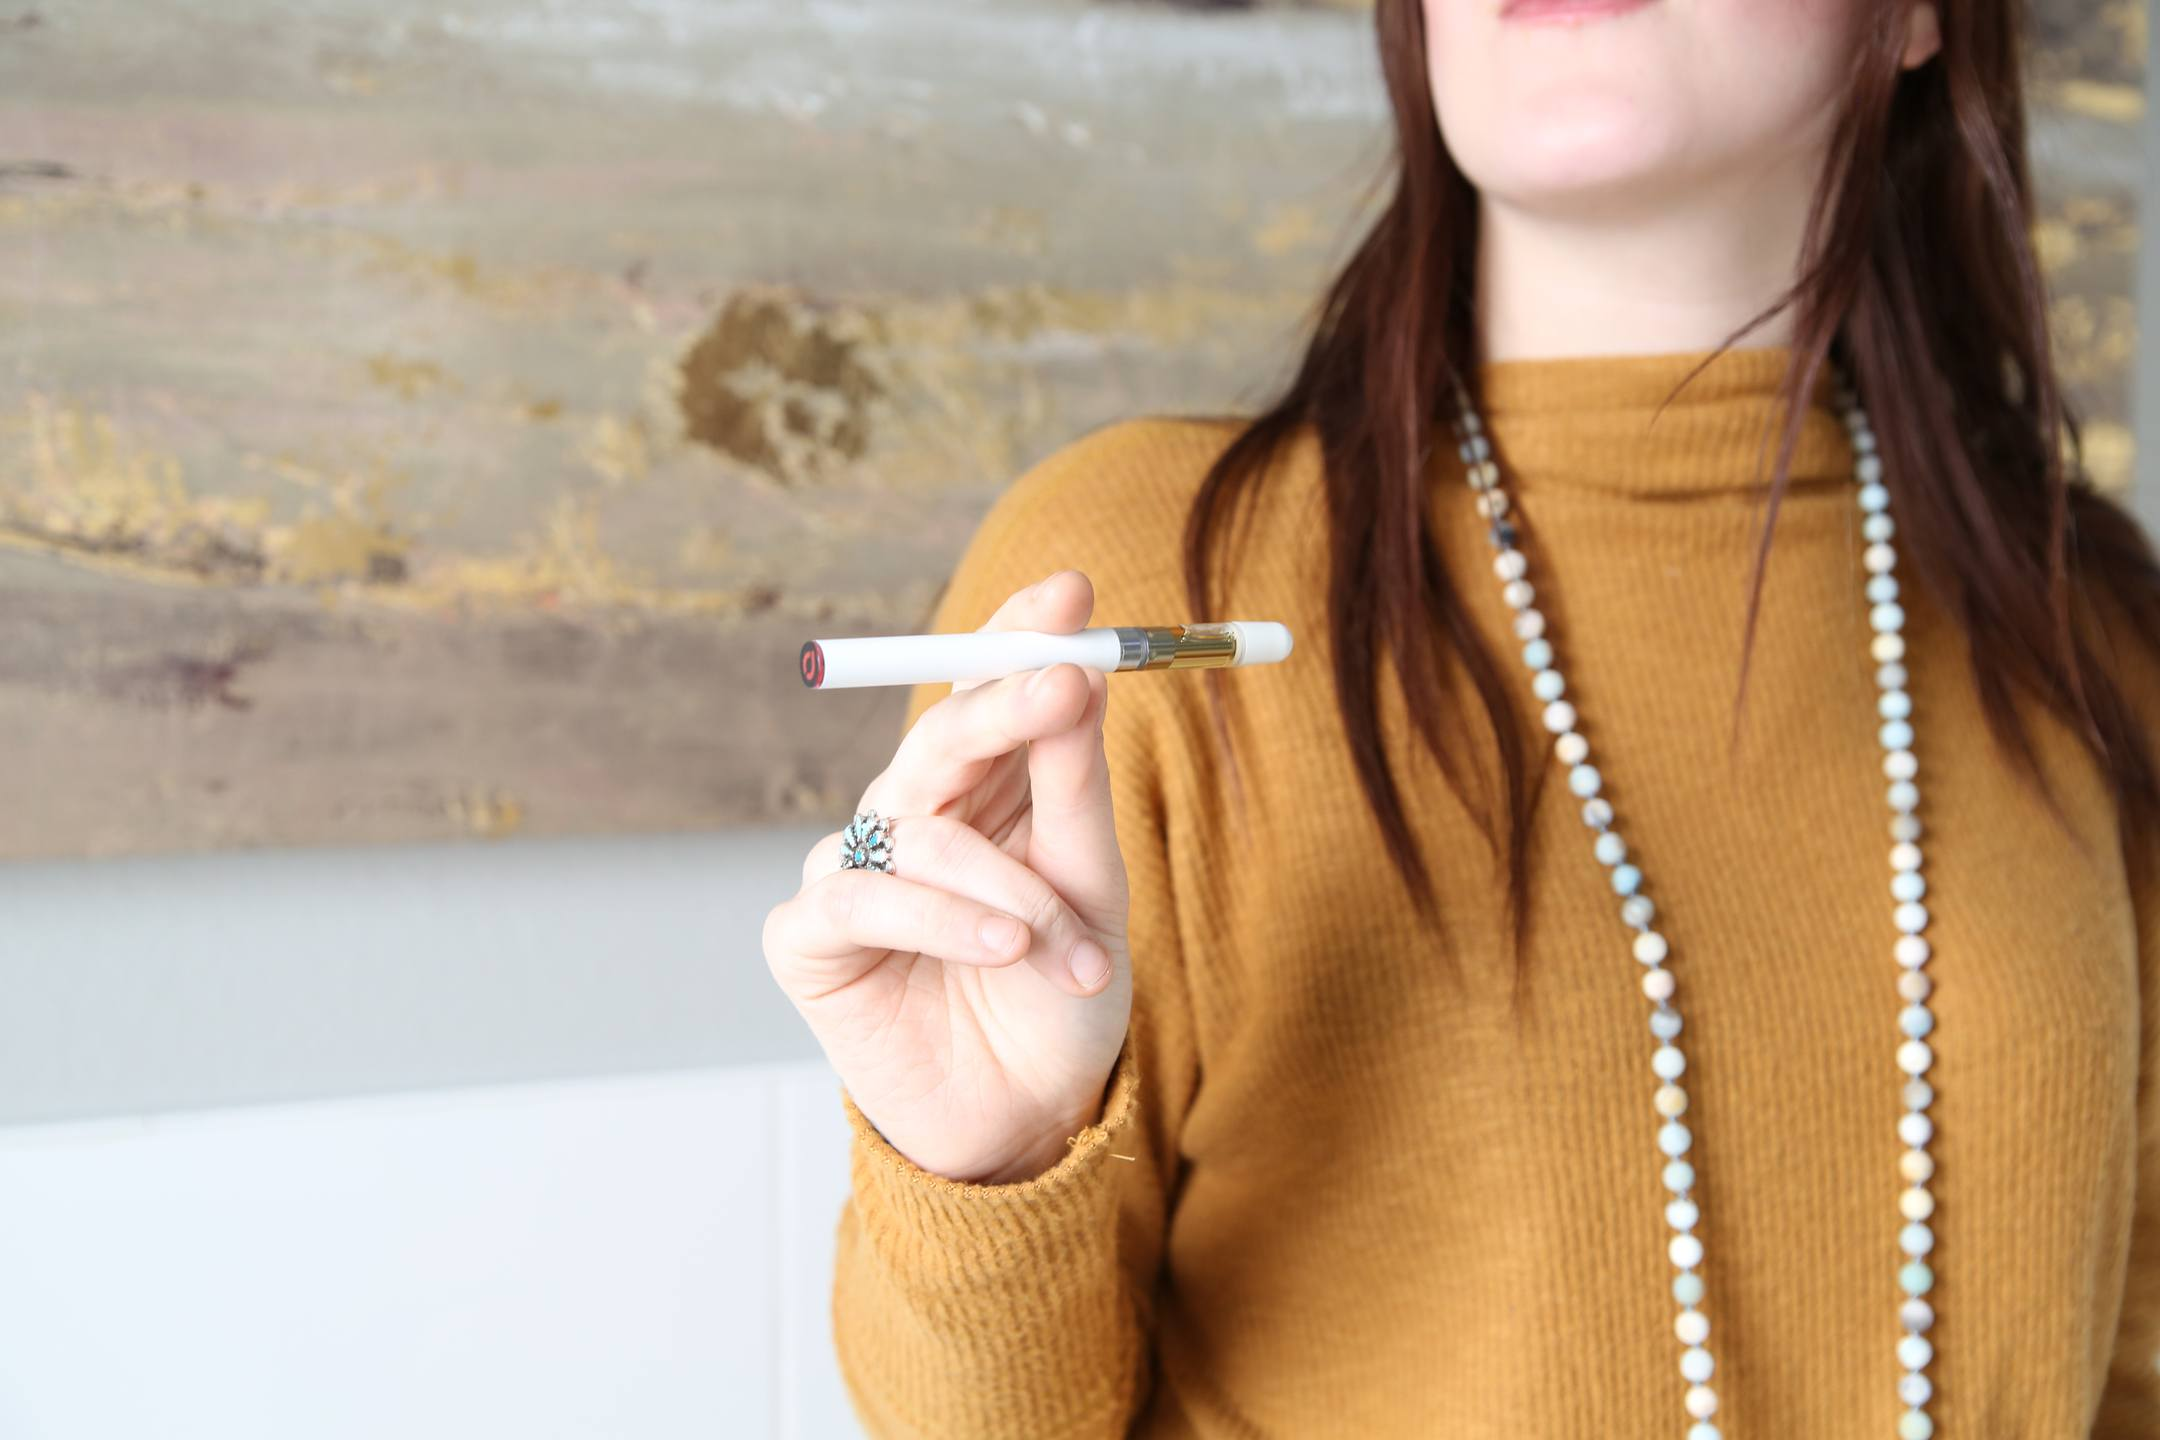 A brunette woman in an orange sweater and long pearl necklace holds an elegant Joy Organics CBD vape pen in one hand.